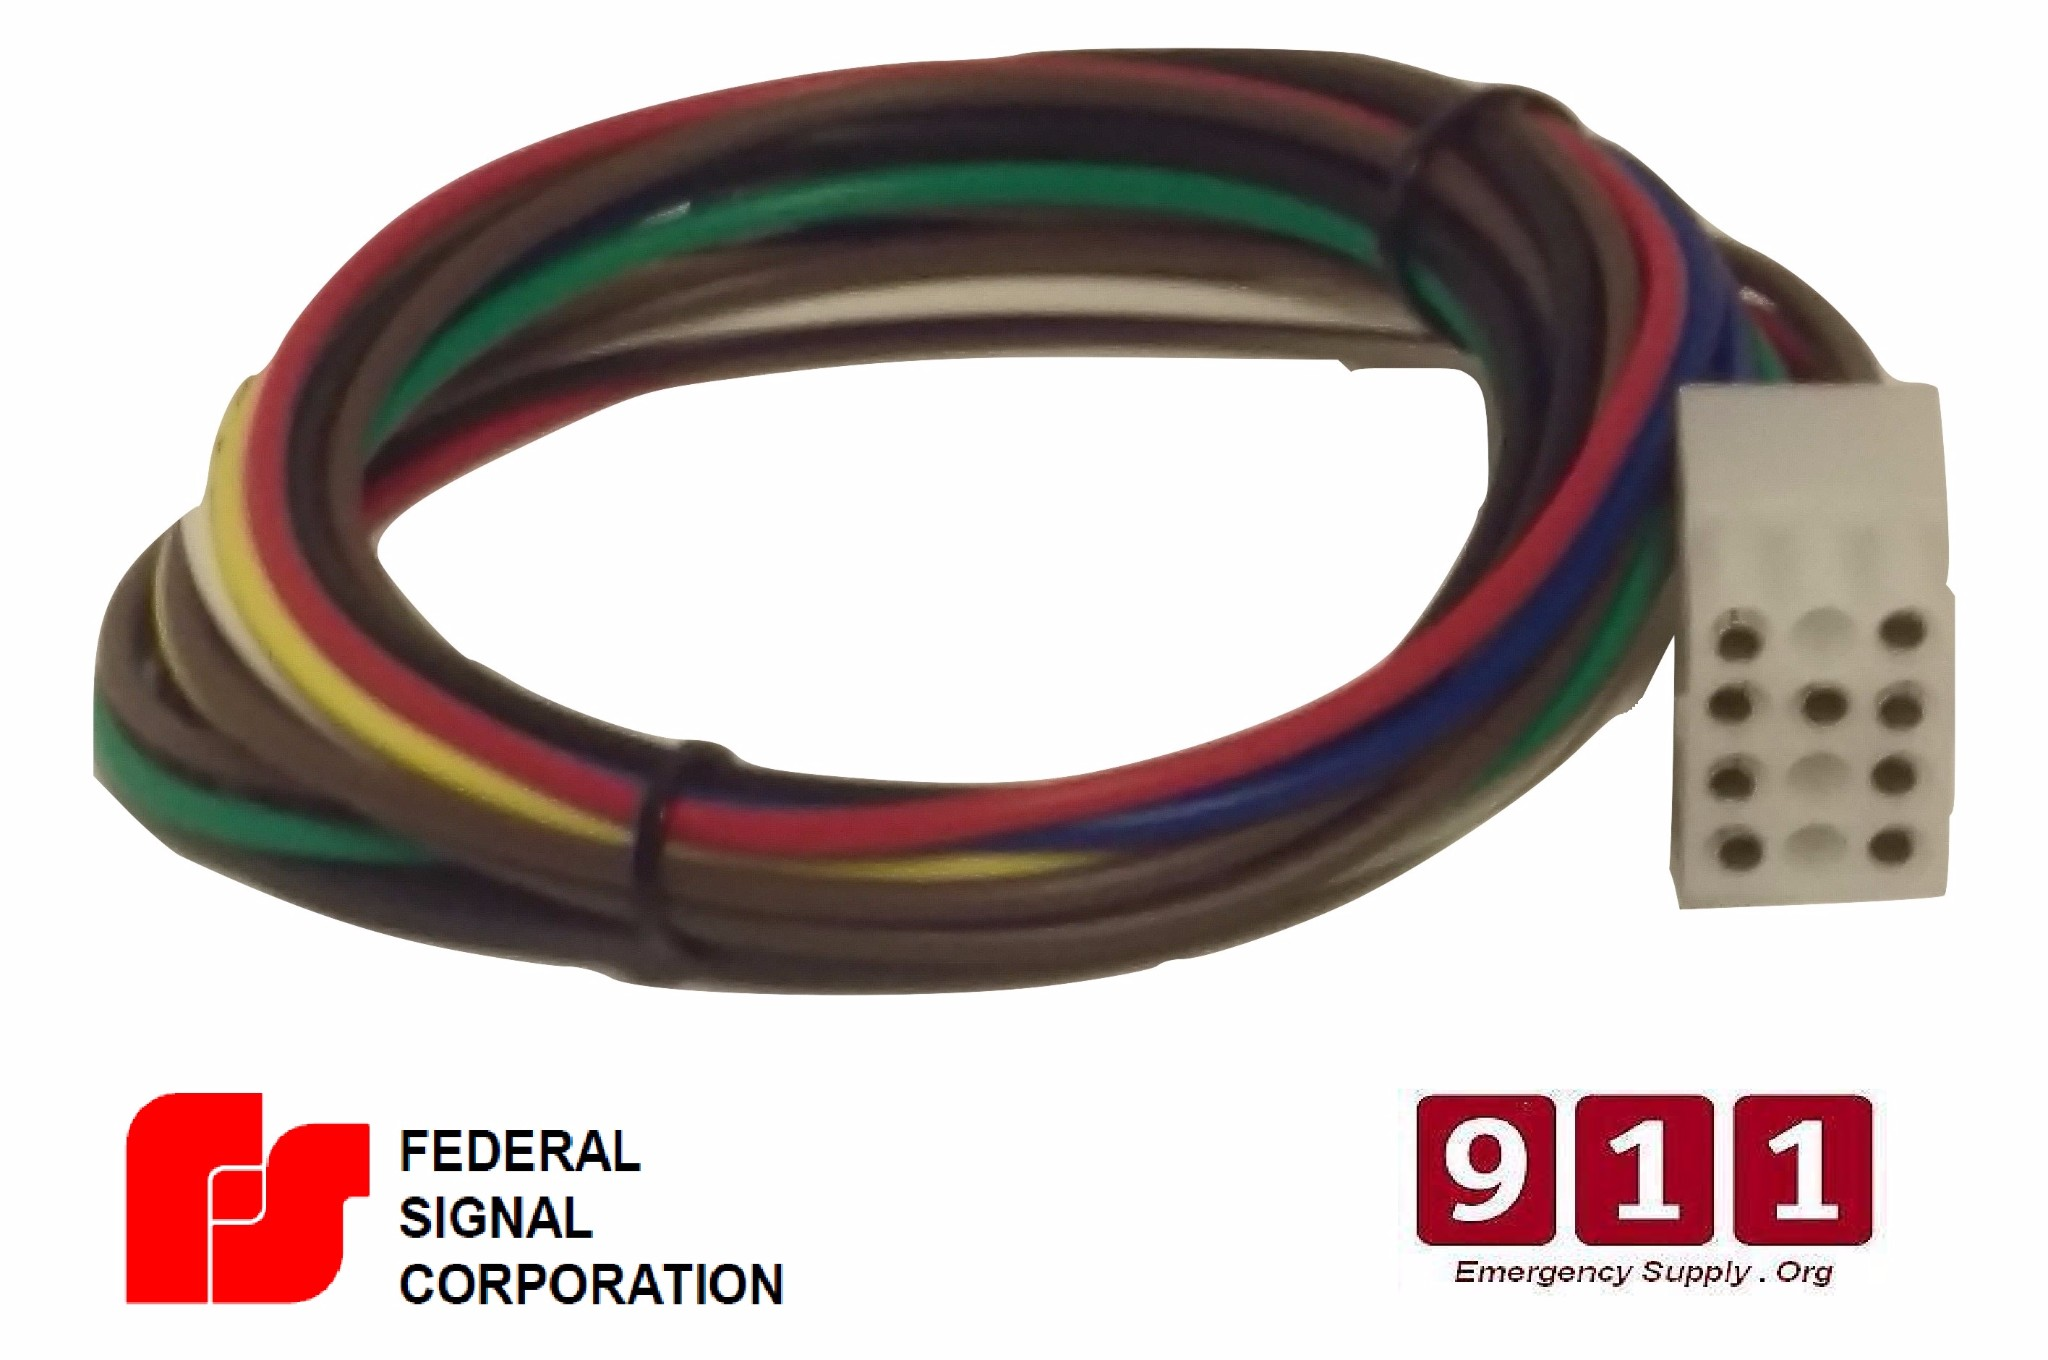 [DIAGRAM_38DE]  Federal Signal Siren Power Harness Plug Cable 12 Pin PA300 | Federal Pa300 Siren Wiring Diagram |  | 911 Emergency Supply